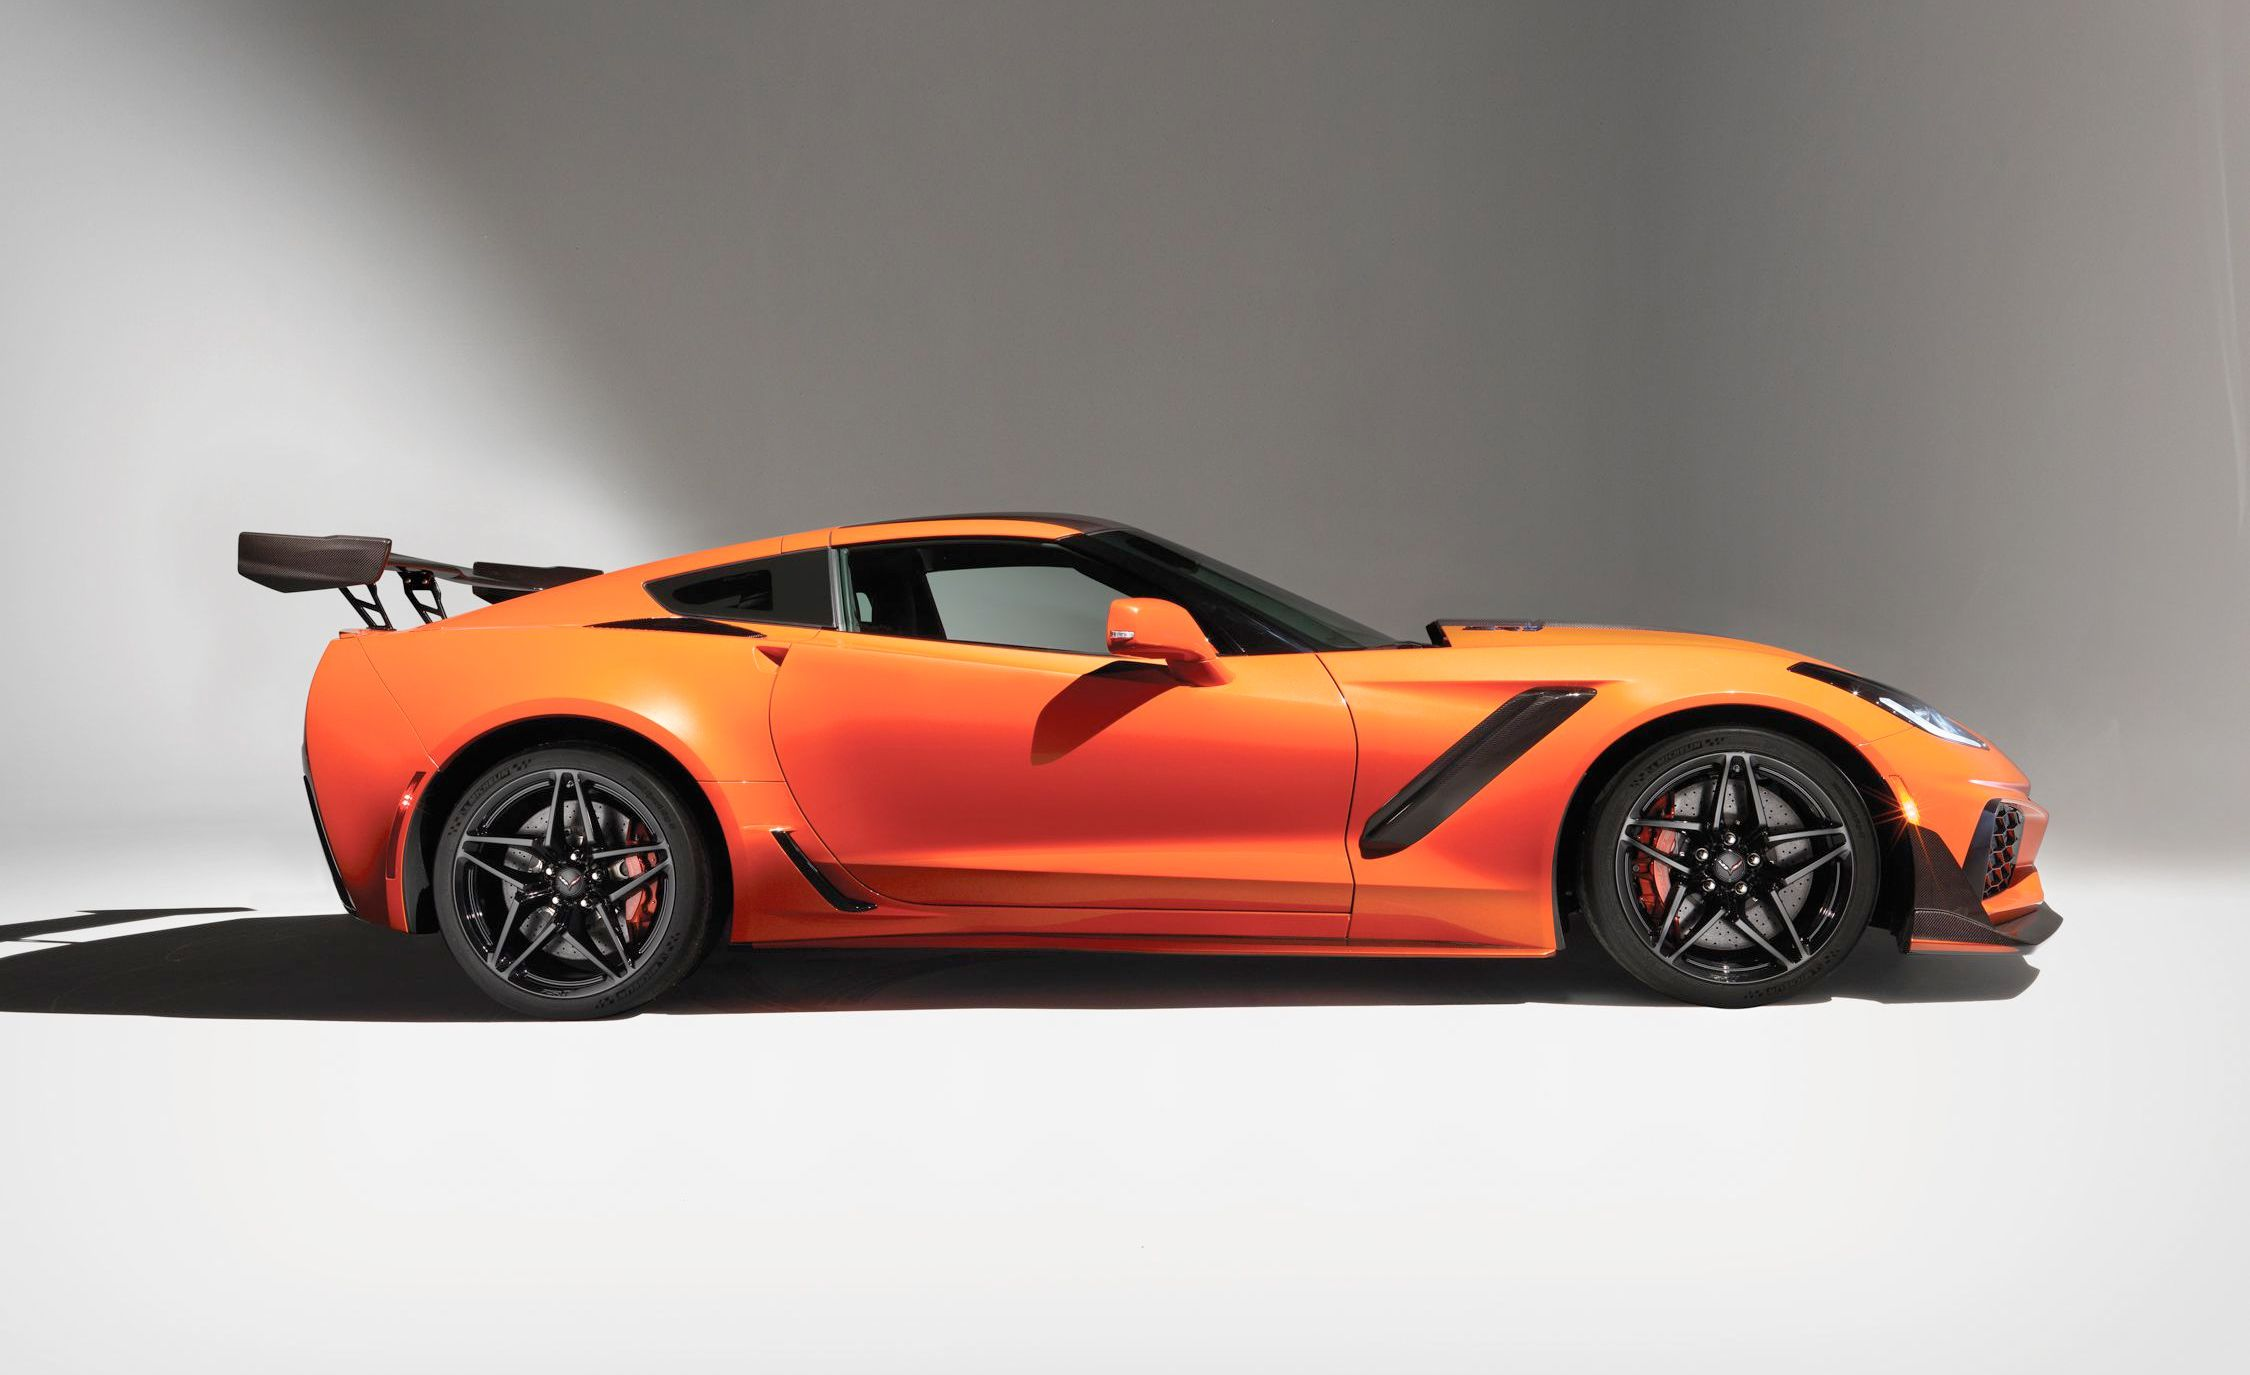 Chevrolet Corvette ZR1 Reviews | Chevrolet Corvette ZR1 Price, Photos, and  Specs | Car and Driver